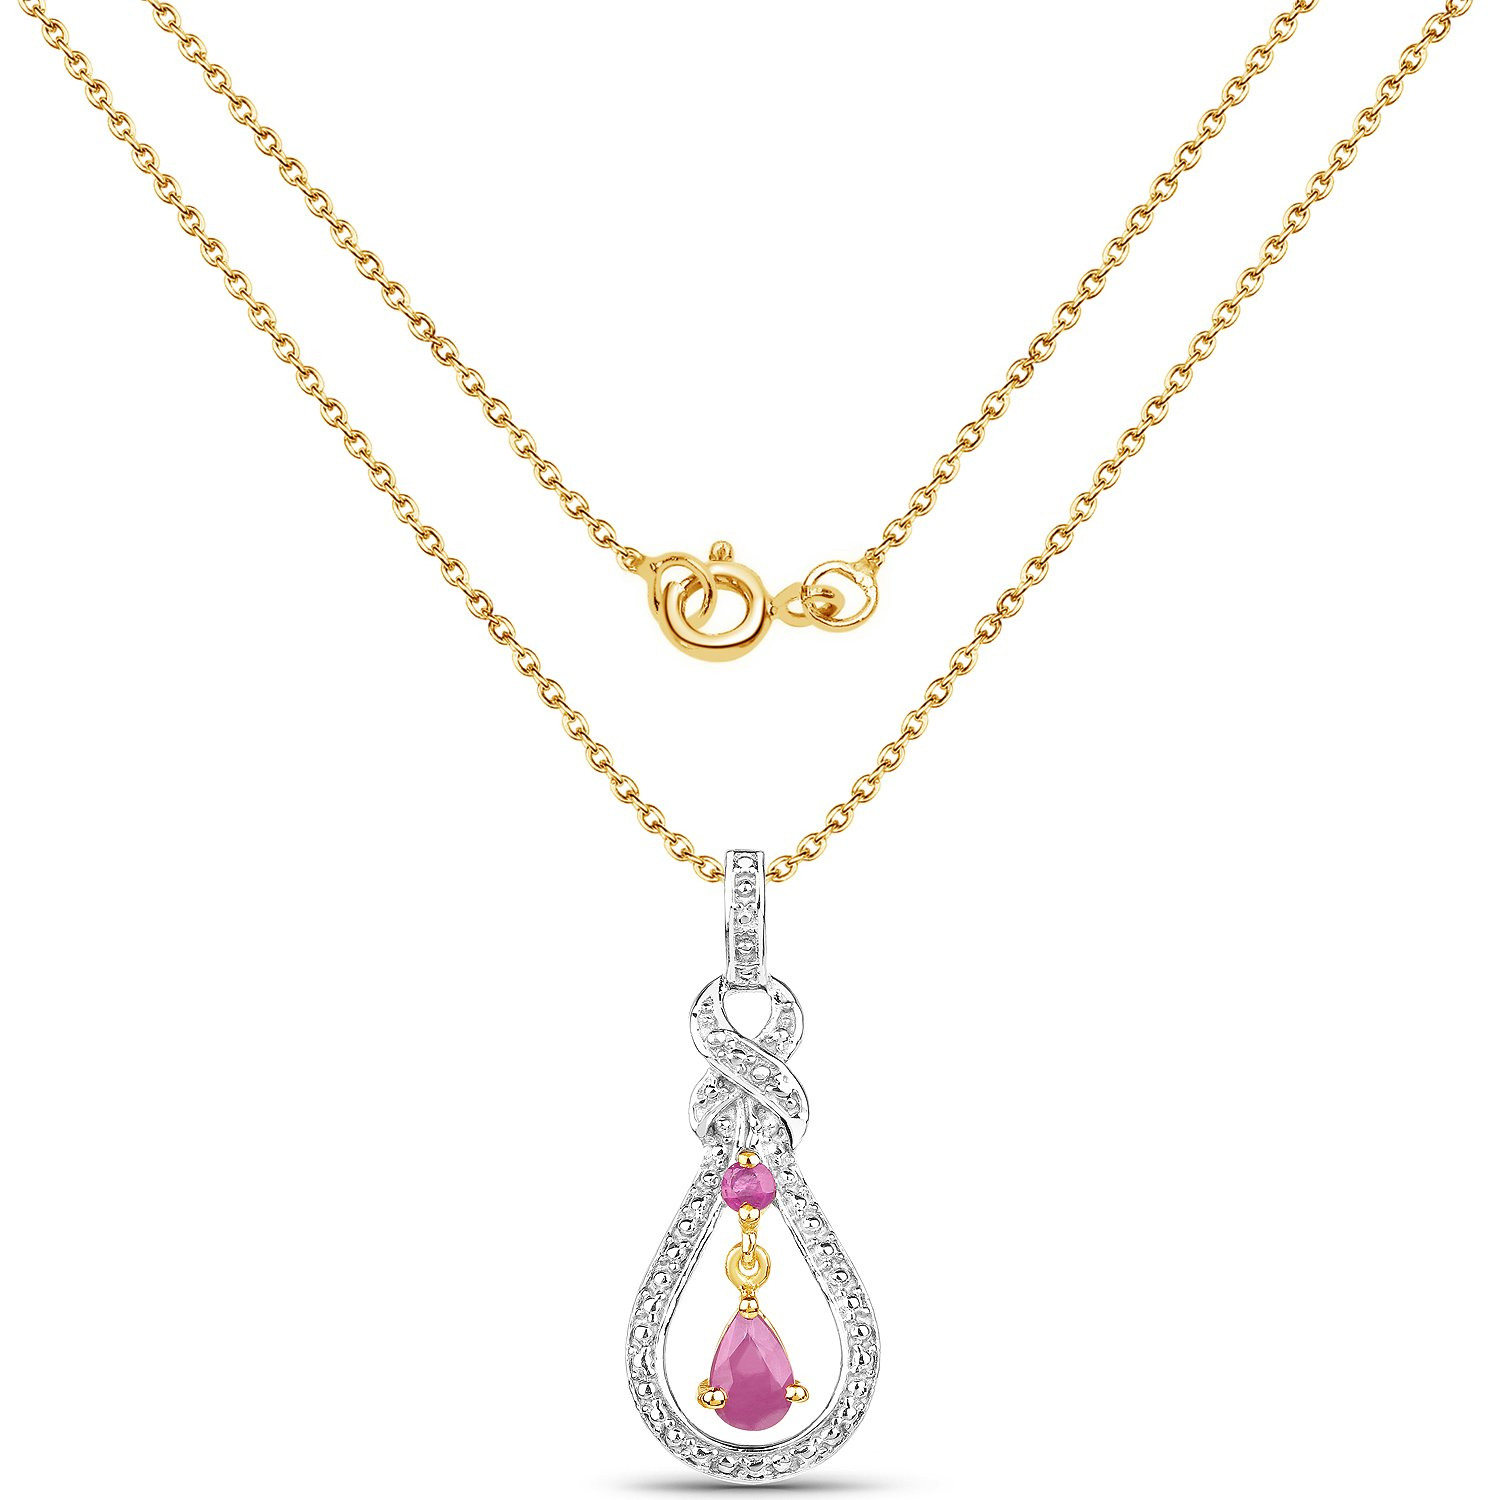 14K Yellow Gold Plated 0.48 Carat Genuine Ruby .925 Sterling Silver Pendant